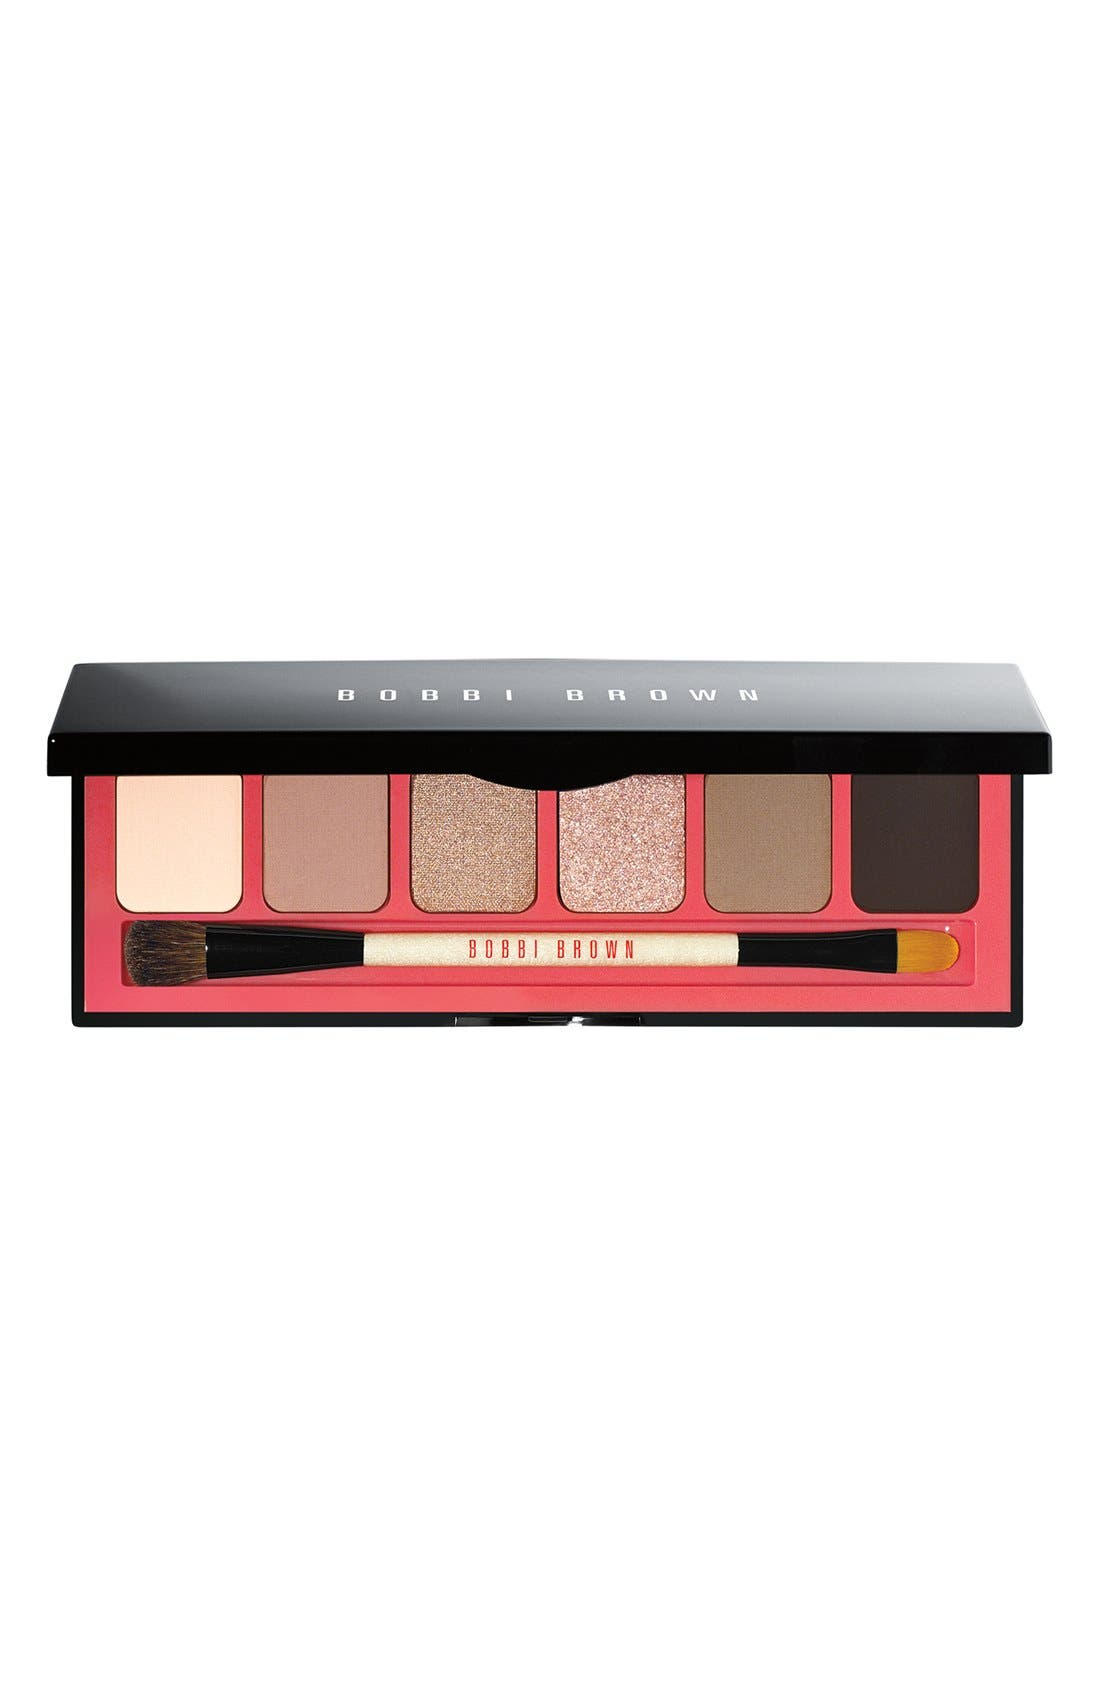 'Nectar & Nude' Eyeshadow Palette,                             Main thumbnail 1, color,                             000